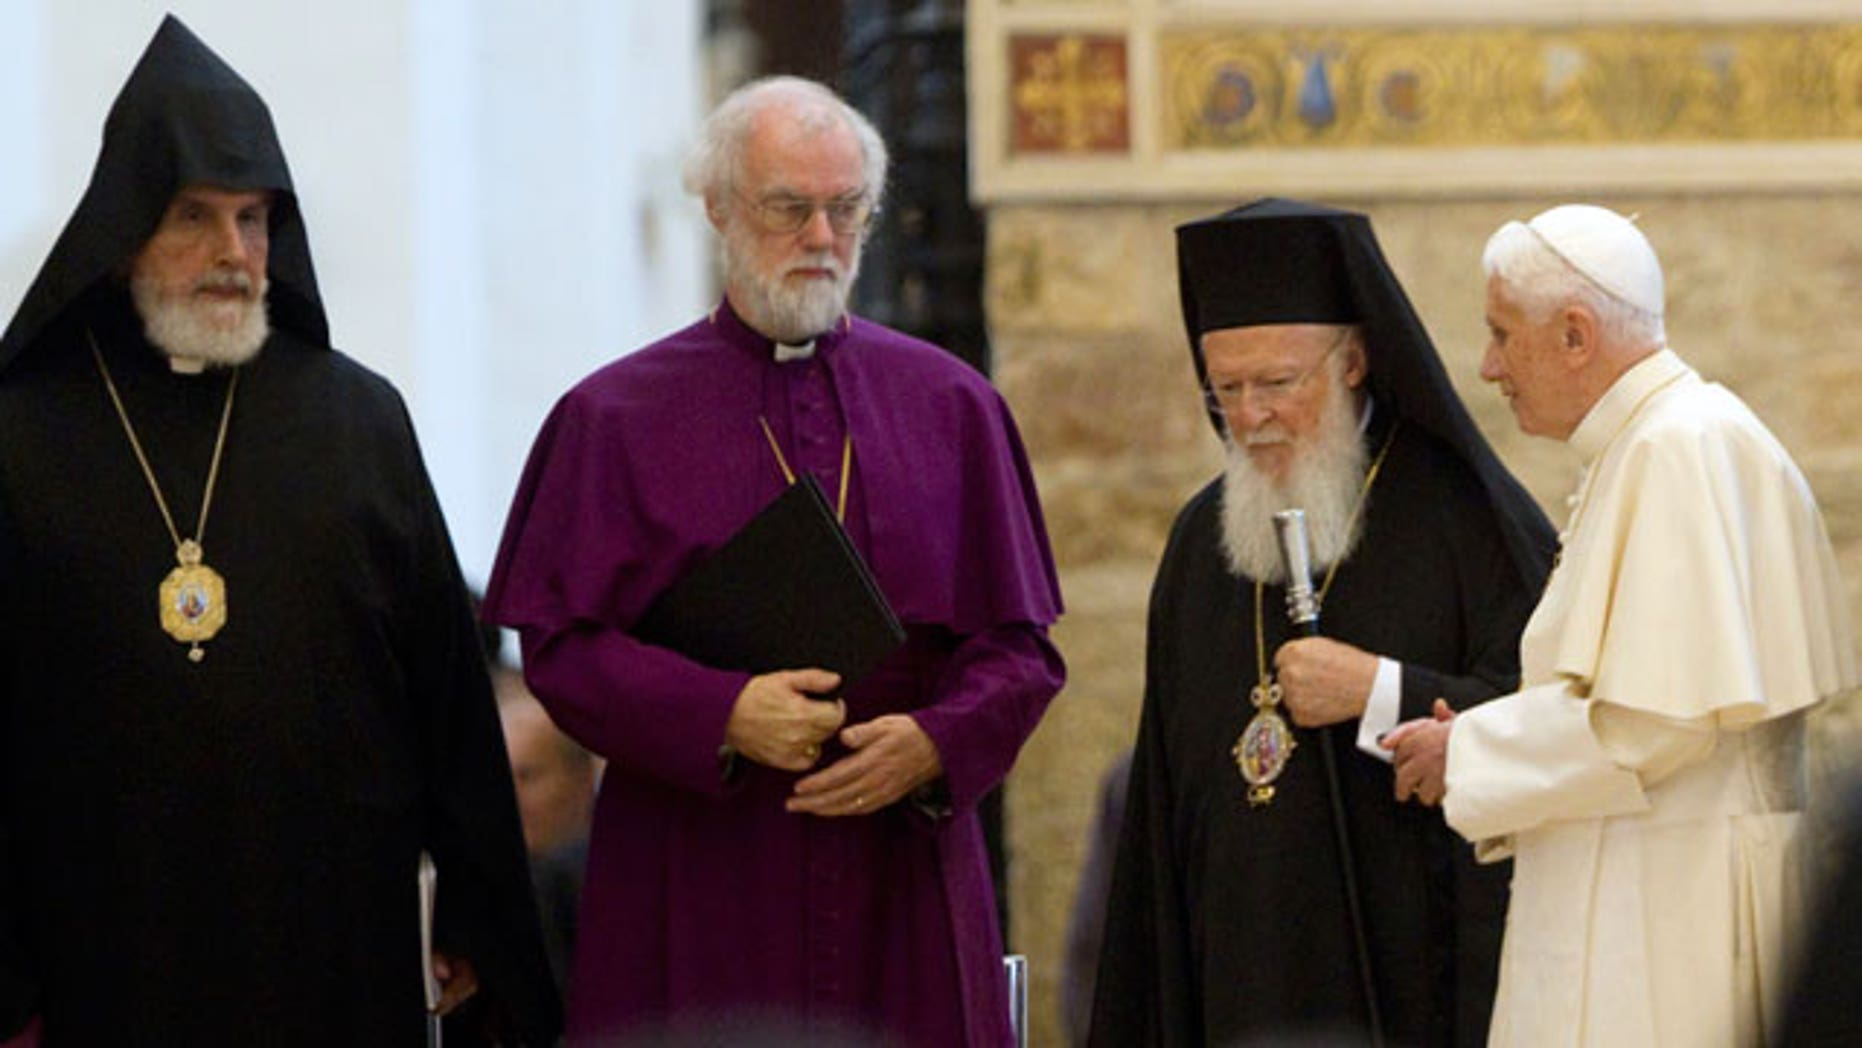 Oct. 27, 2011: From left, First Primate of the New Armenian Diocese of France Norvan Zakarian, Archbishop of Canterbury Rowan Douglas Williams, Ecumenical Patriarch Bartholomew I, and Pope Benedict XVI leave at the end of a peace meeting in the St. Mary of the Angels Basilica, in Santa Maria degli Angeli, central Italy.